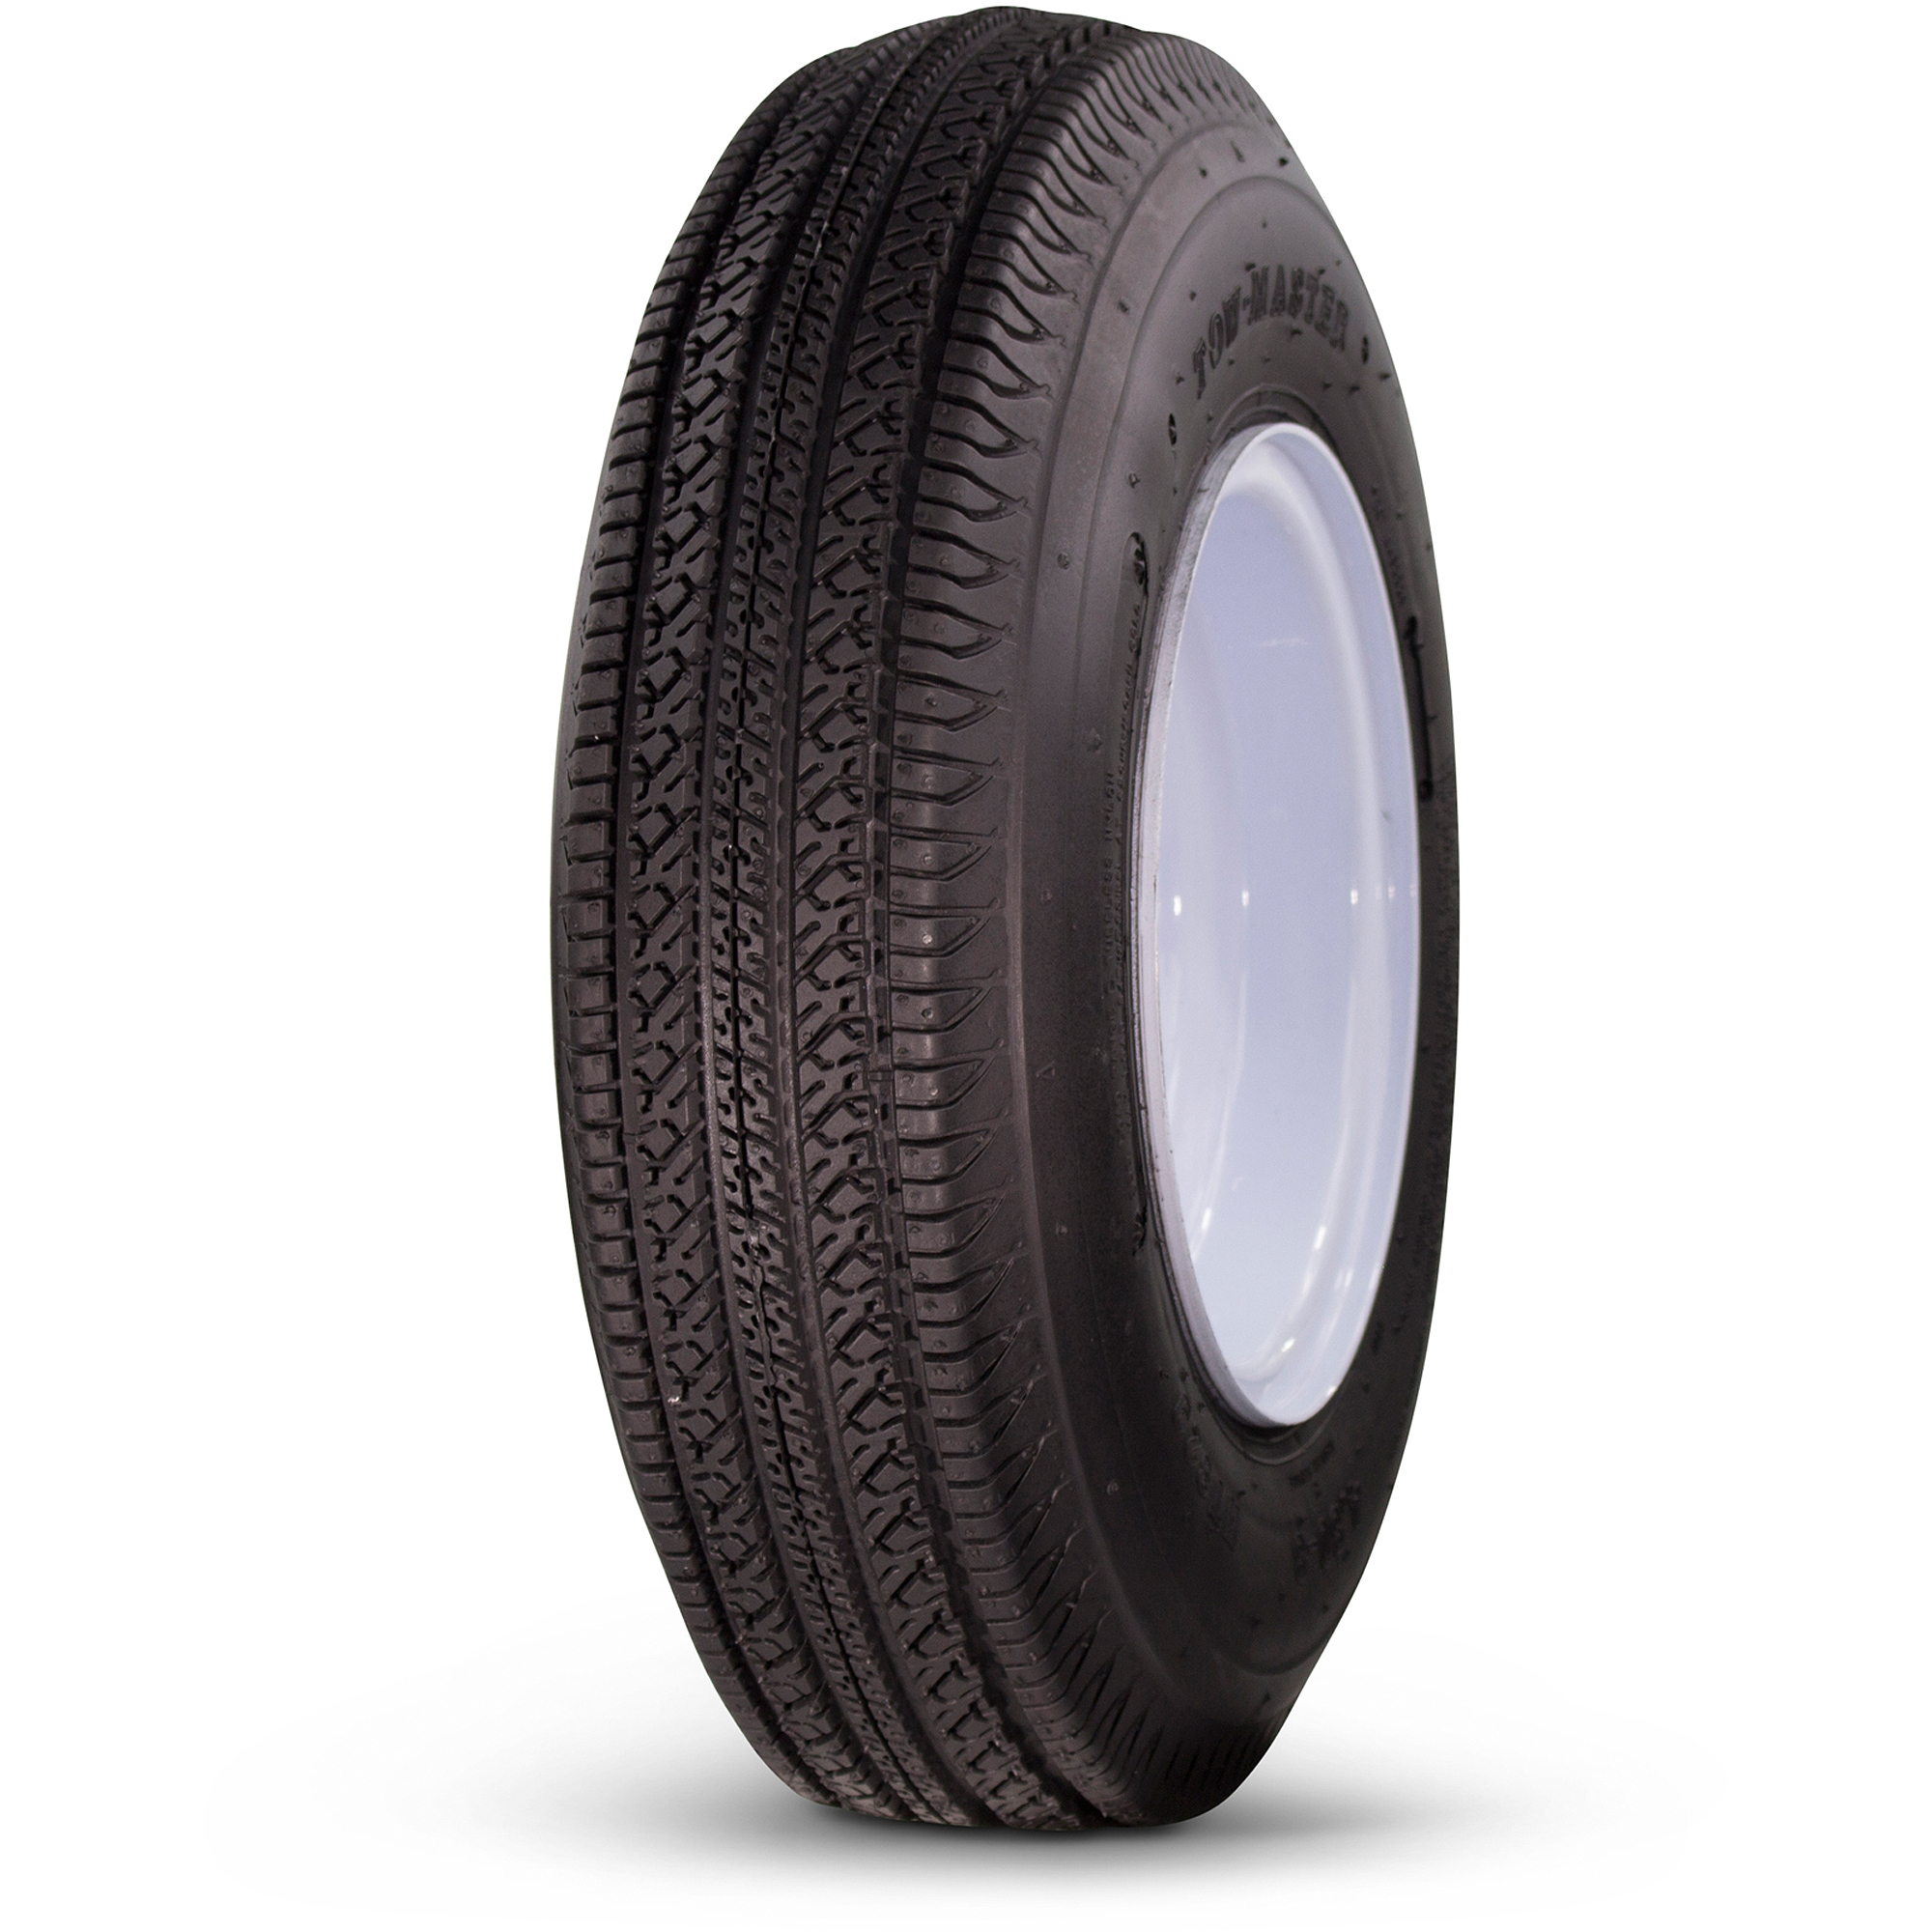 Greenball Towmaster 4.80-8 6-Ply Bias Trailer Tire and Wheel Assembly, 4-on-4 Bolt Pattern, White